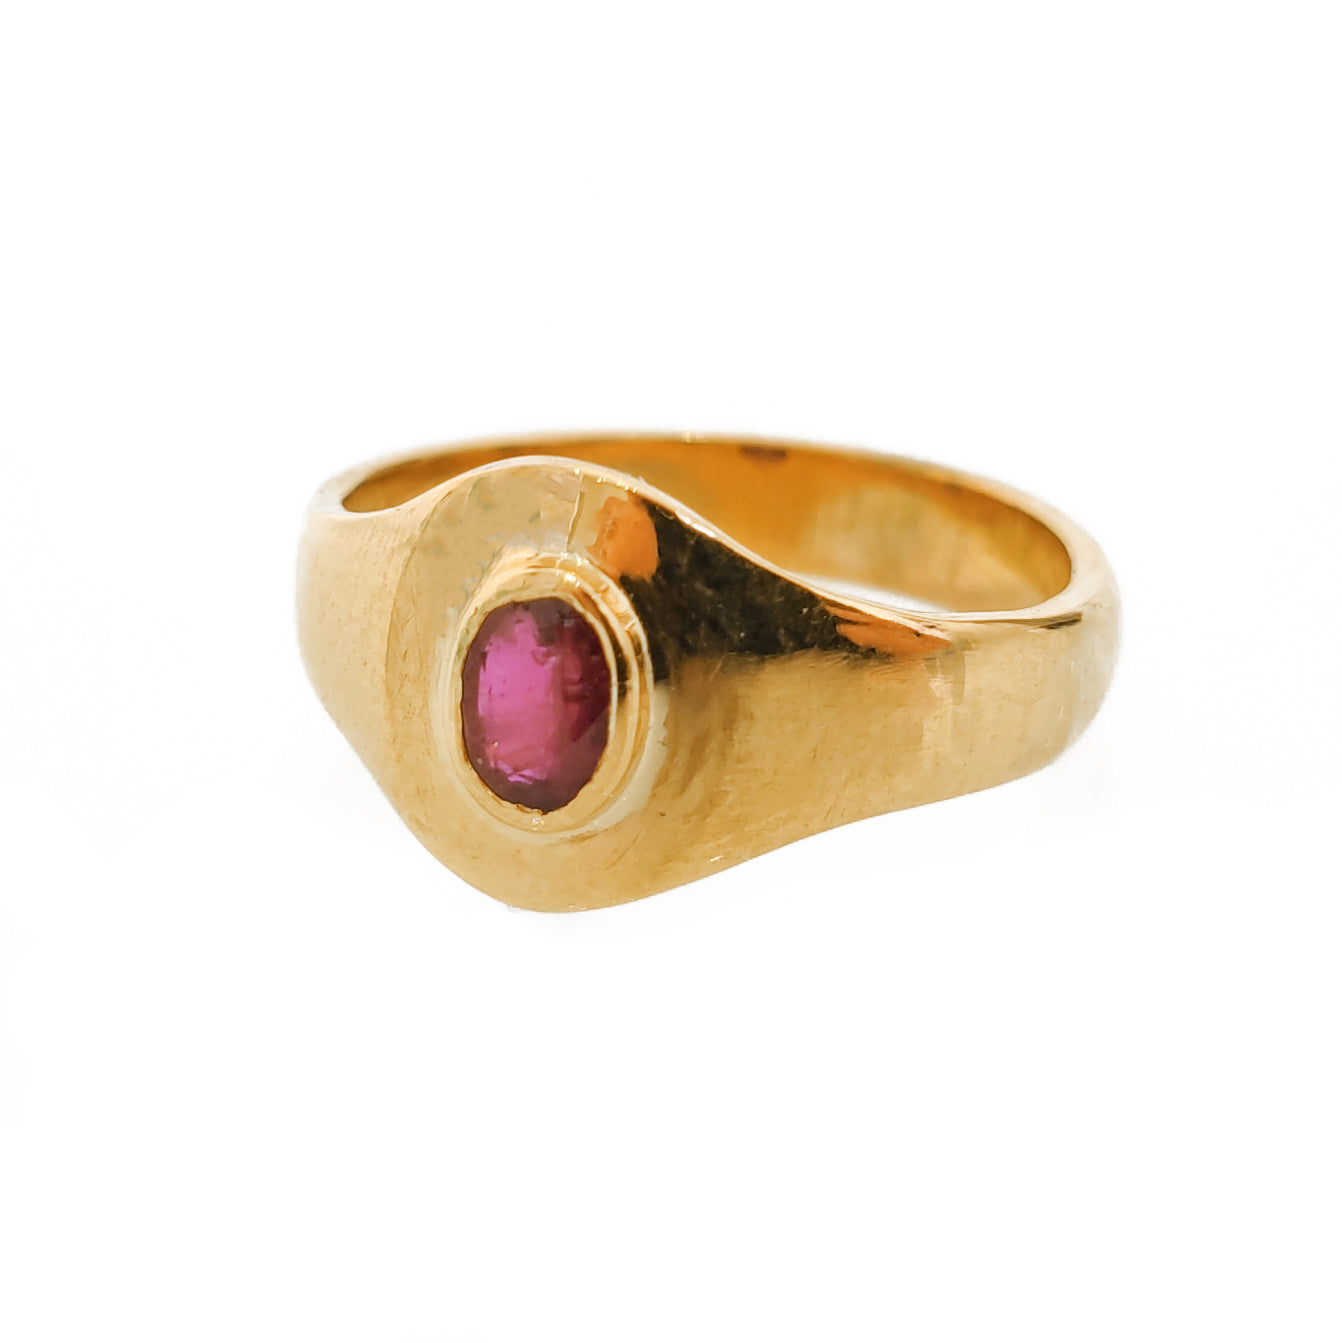 22ct Gold Ring set with Ruby LR-5868